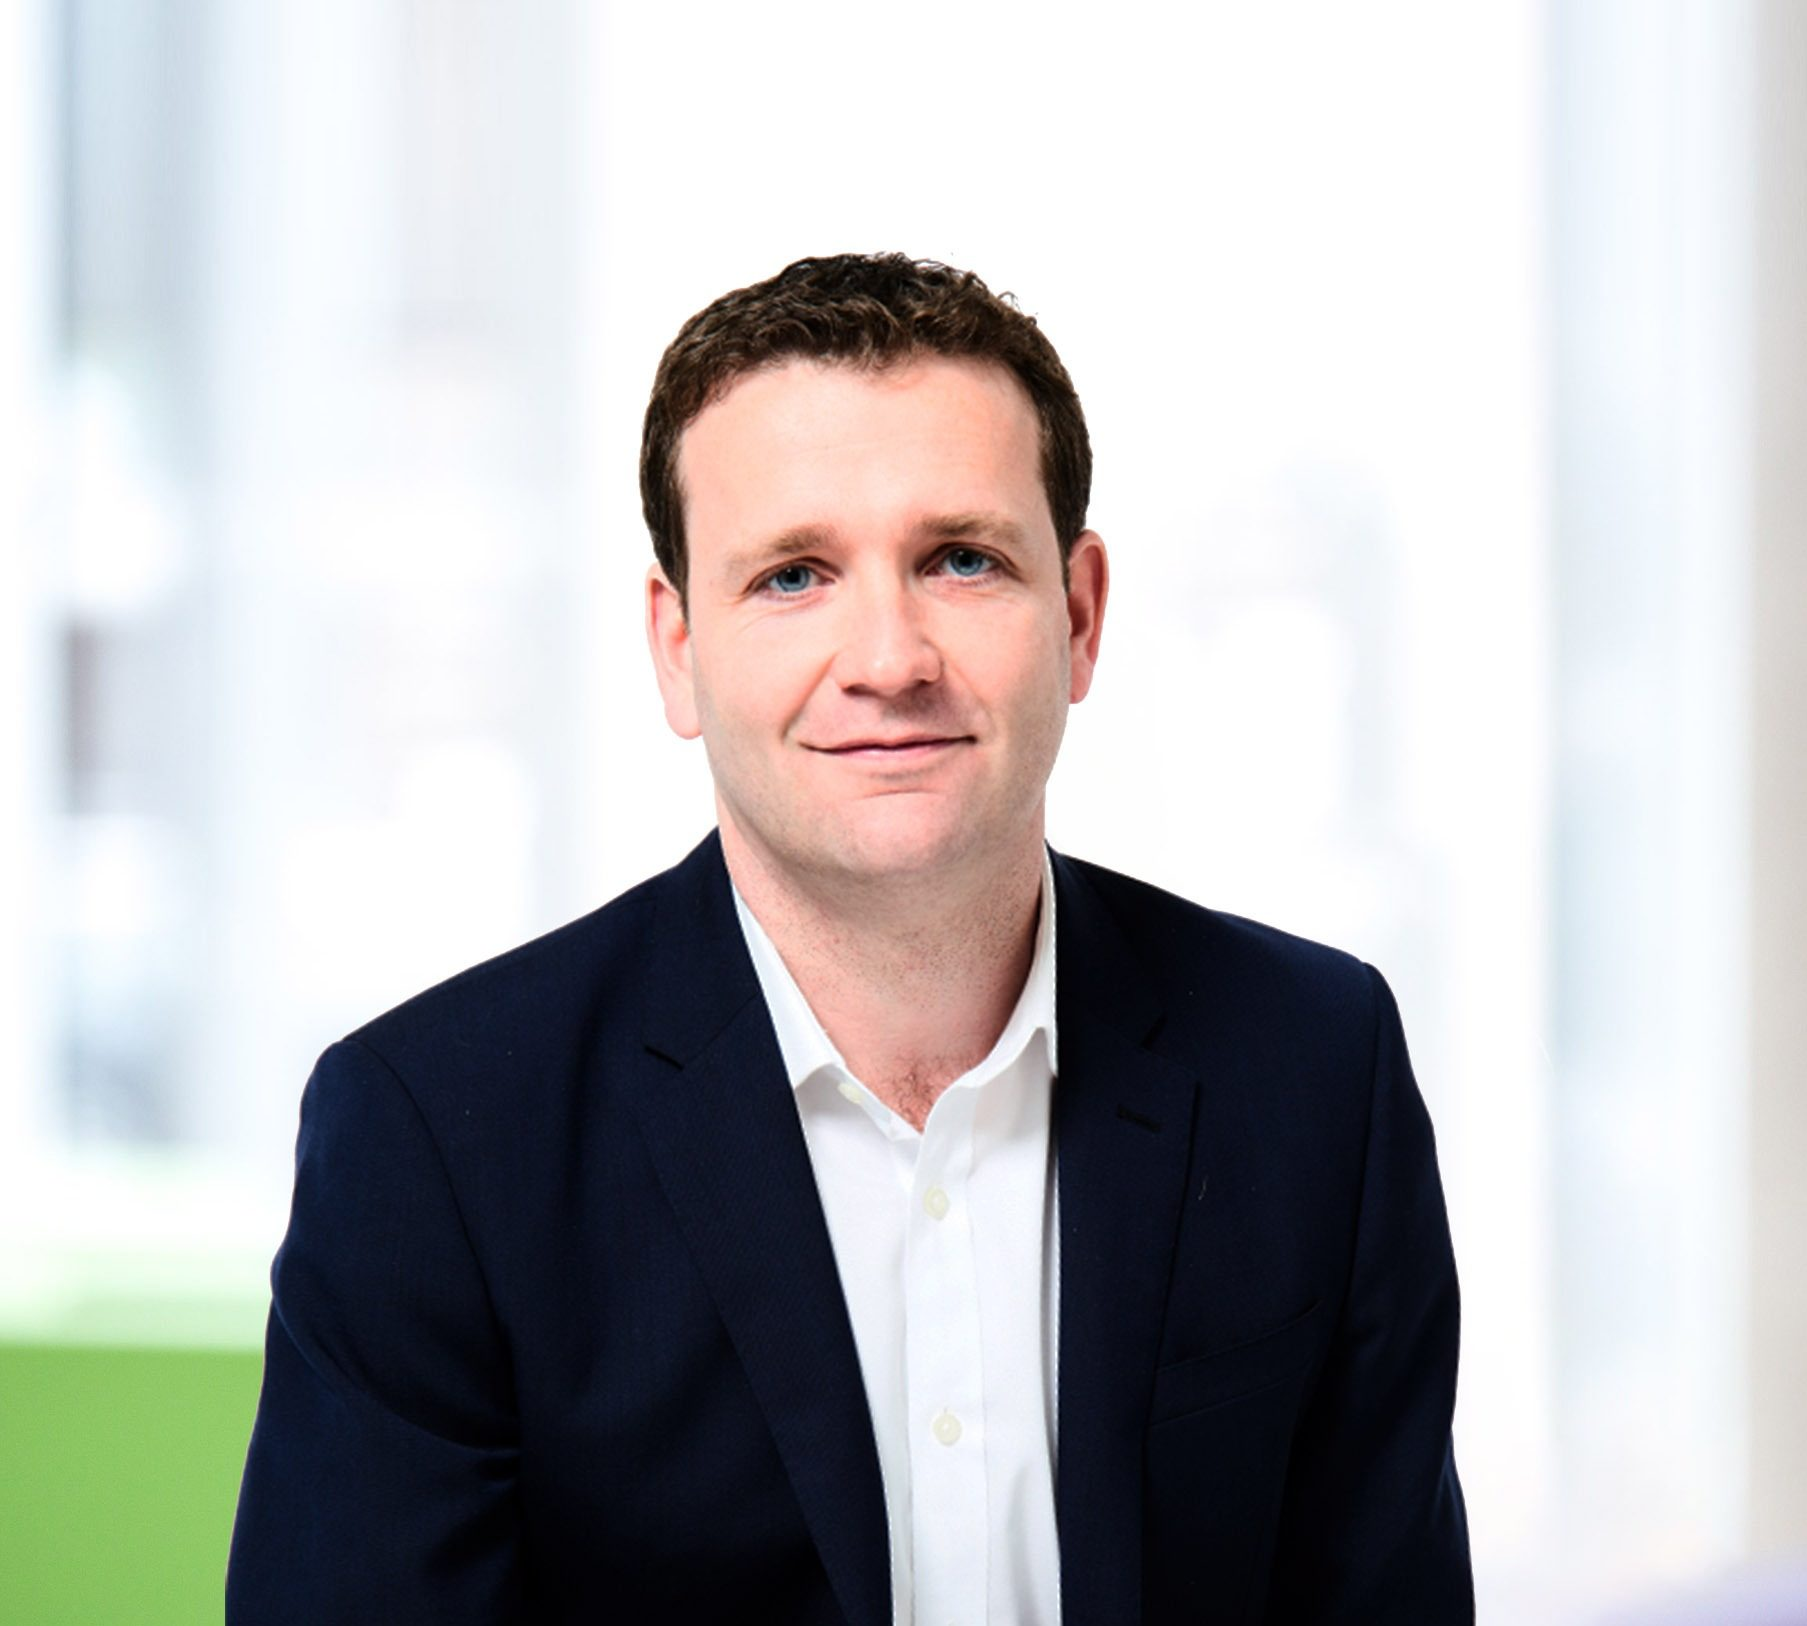 Mike Allenby-Smith, Partner at Acuity Law